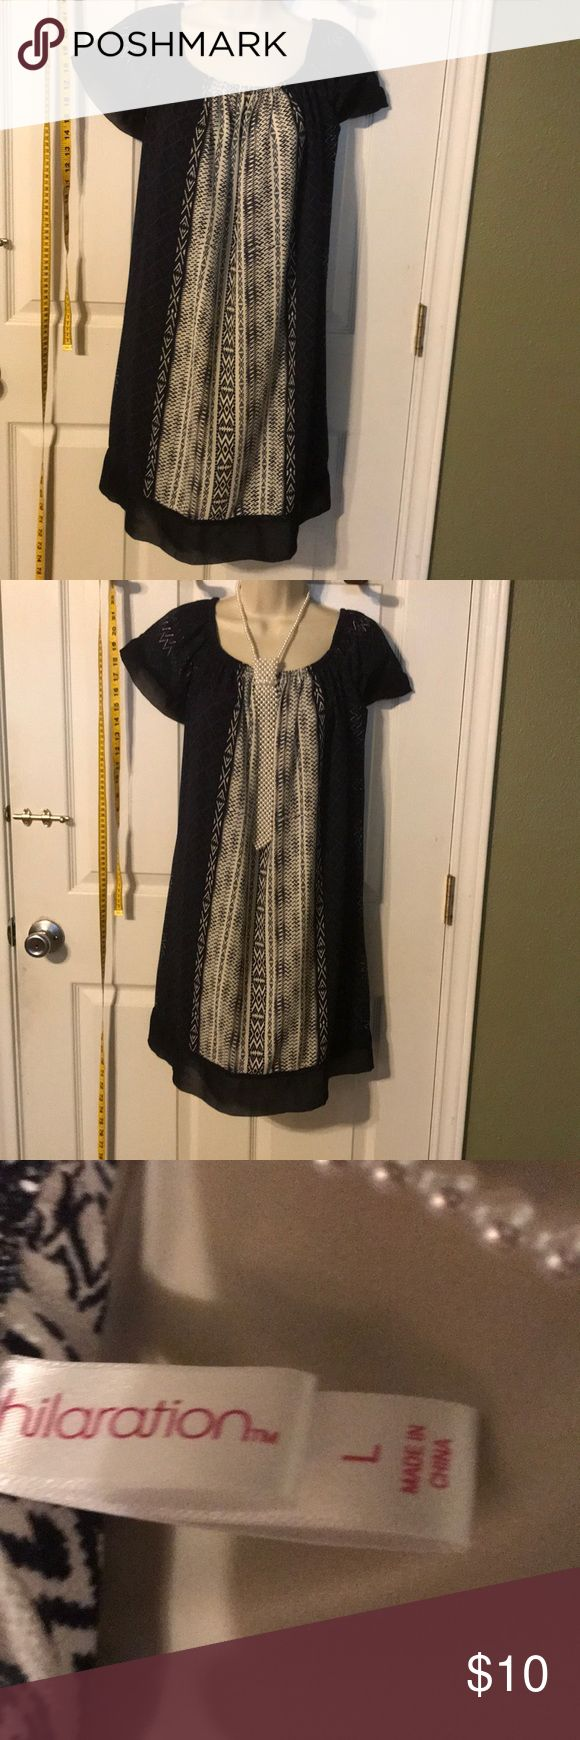 Dress Blue and White Dress.  Good condition no tears or stains. Xhilaration Dresses Midi